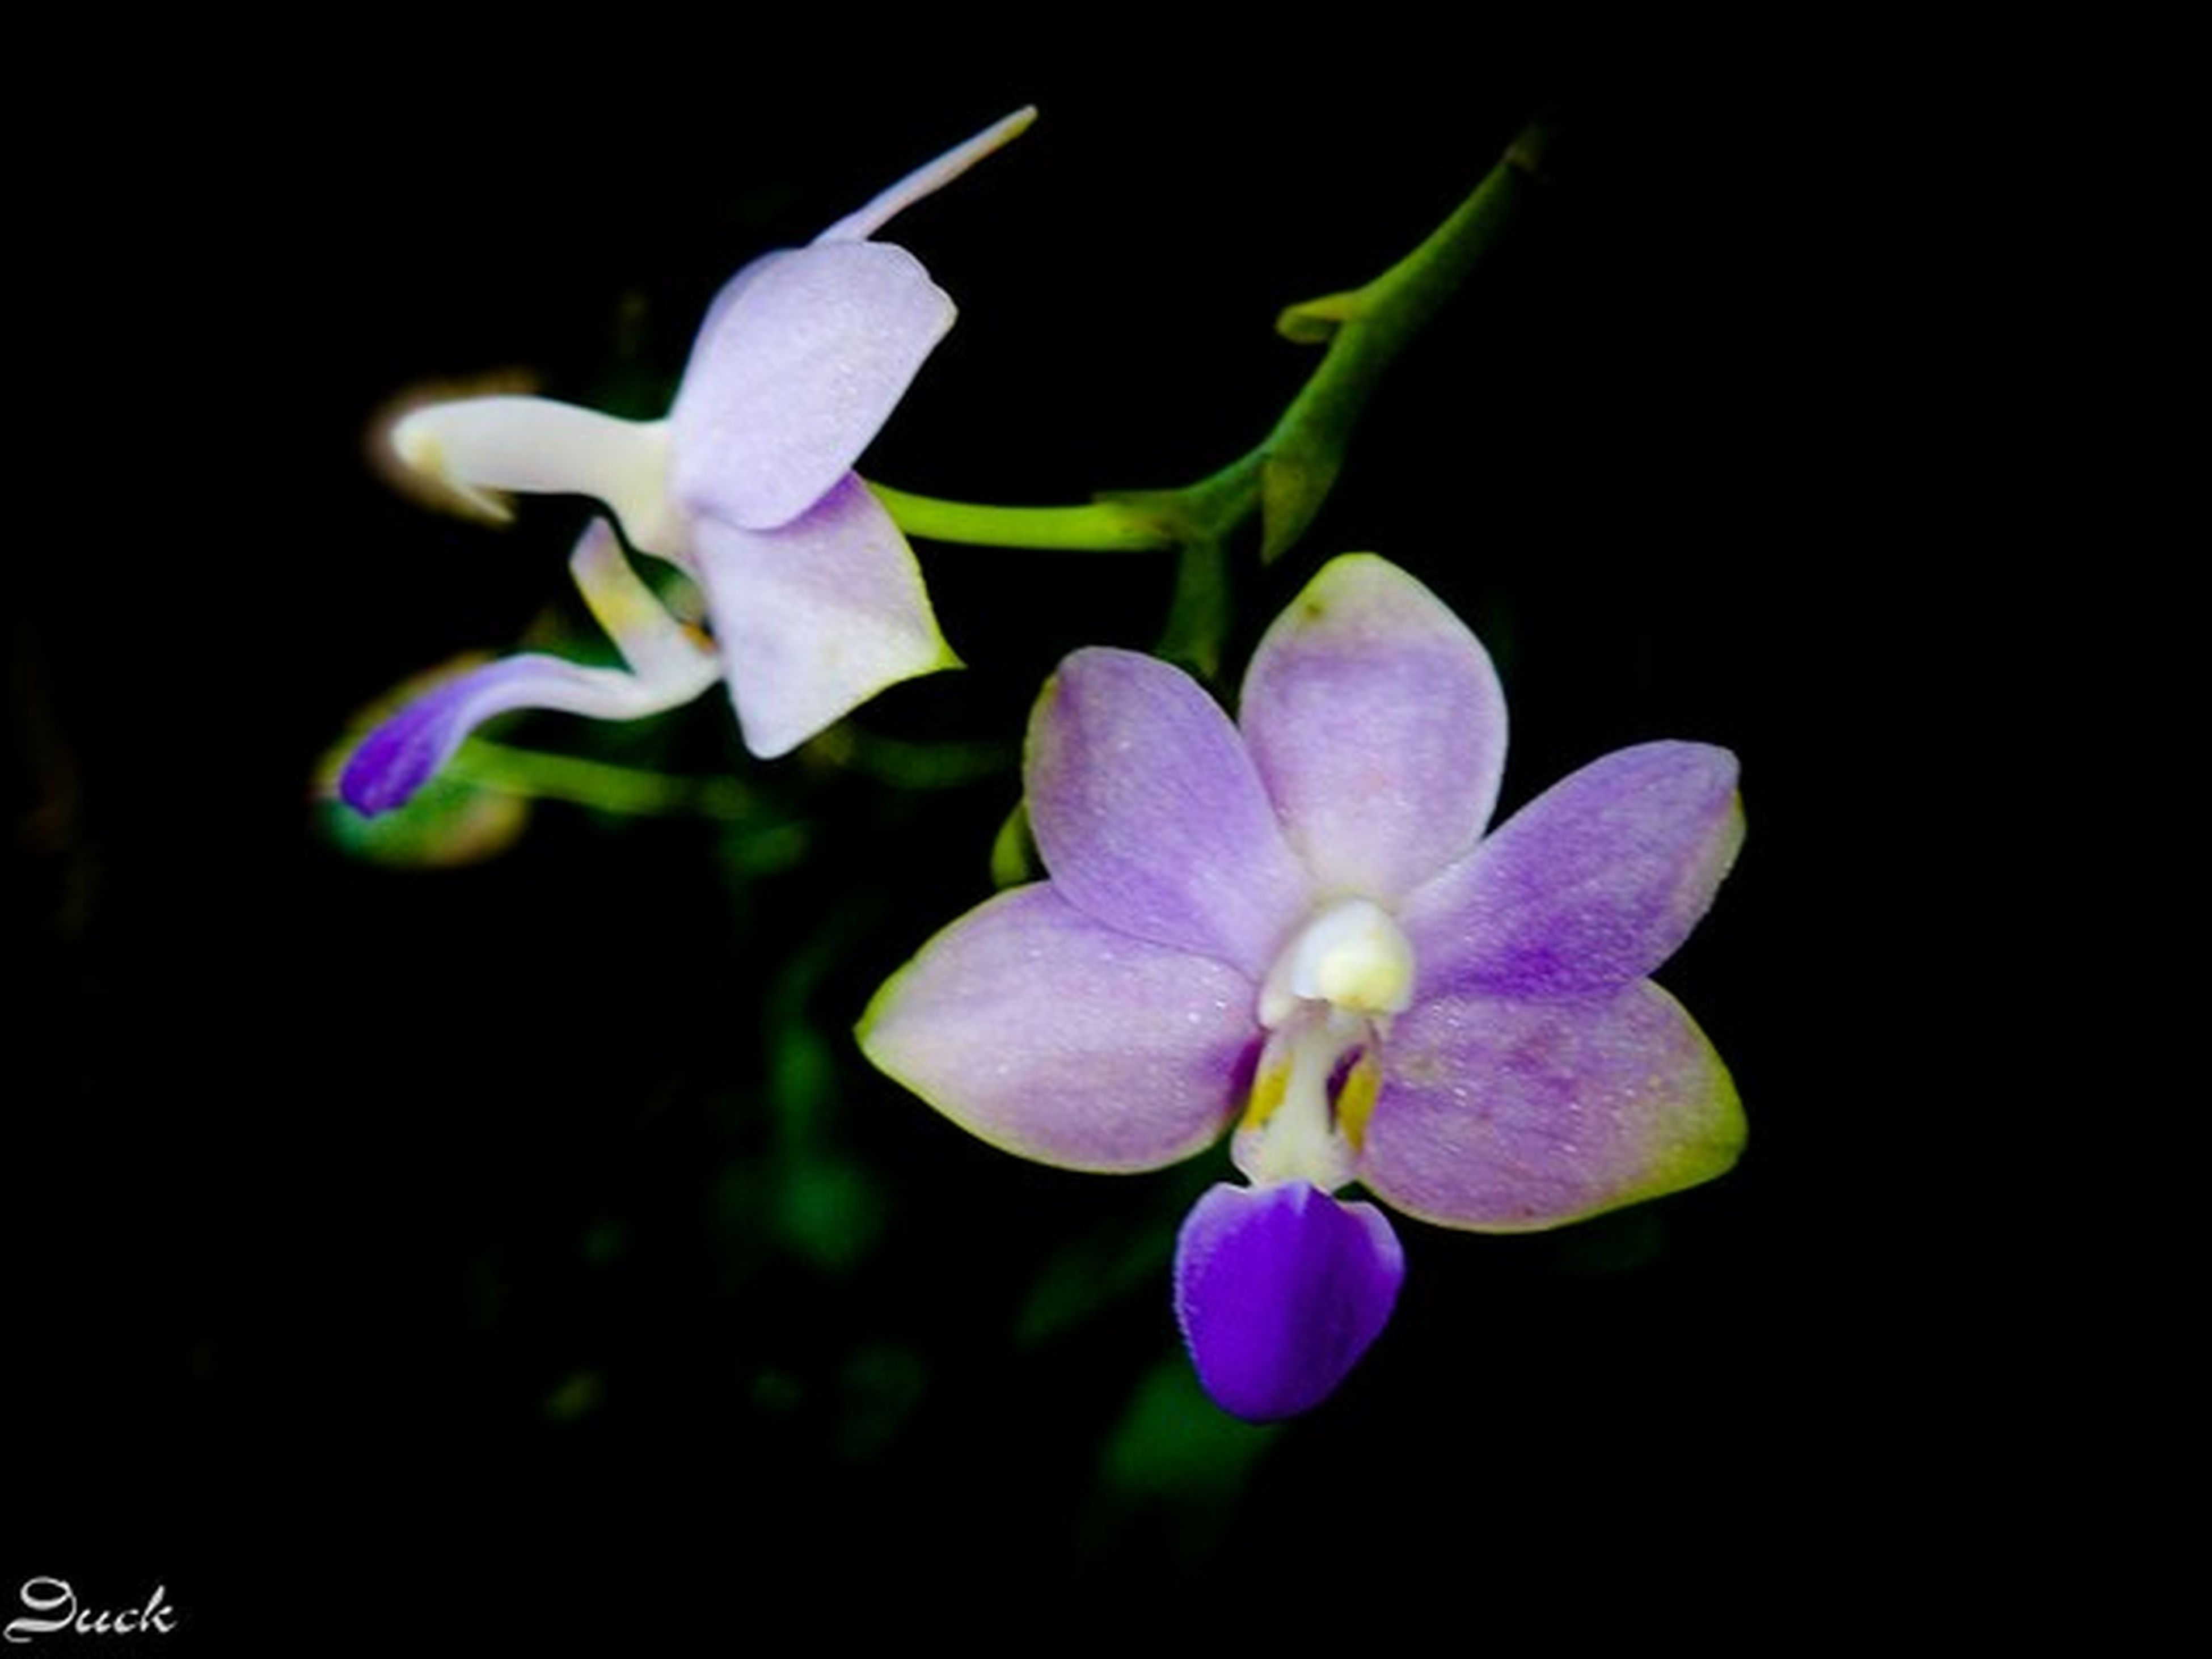 flower, petal, freshness, fragility, flower head, growth, black background, purple, close-up, beauty in nature, studio shot, nature, night, plant, blooming, in bloom, no people, orchid, focus on foreground, blossom